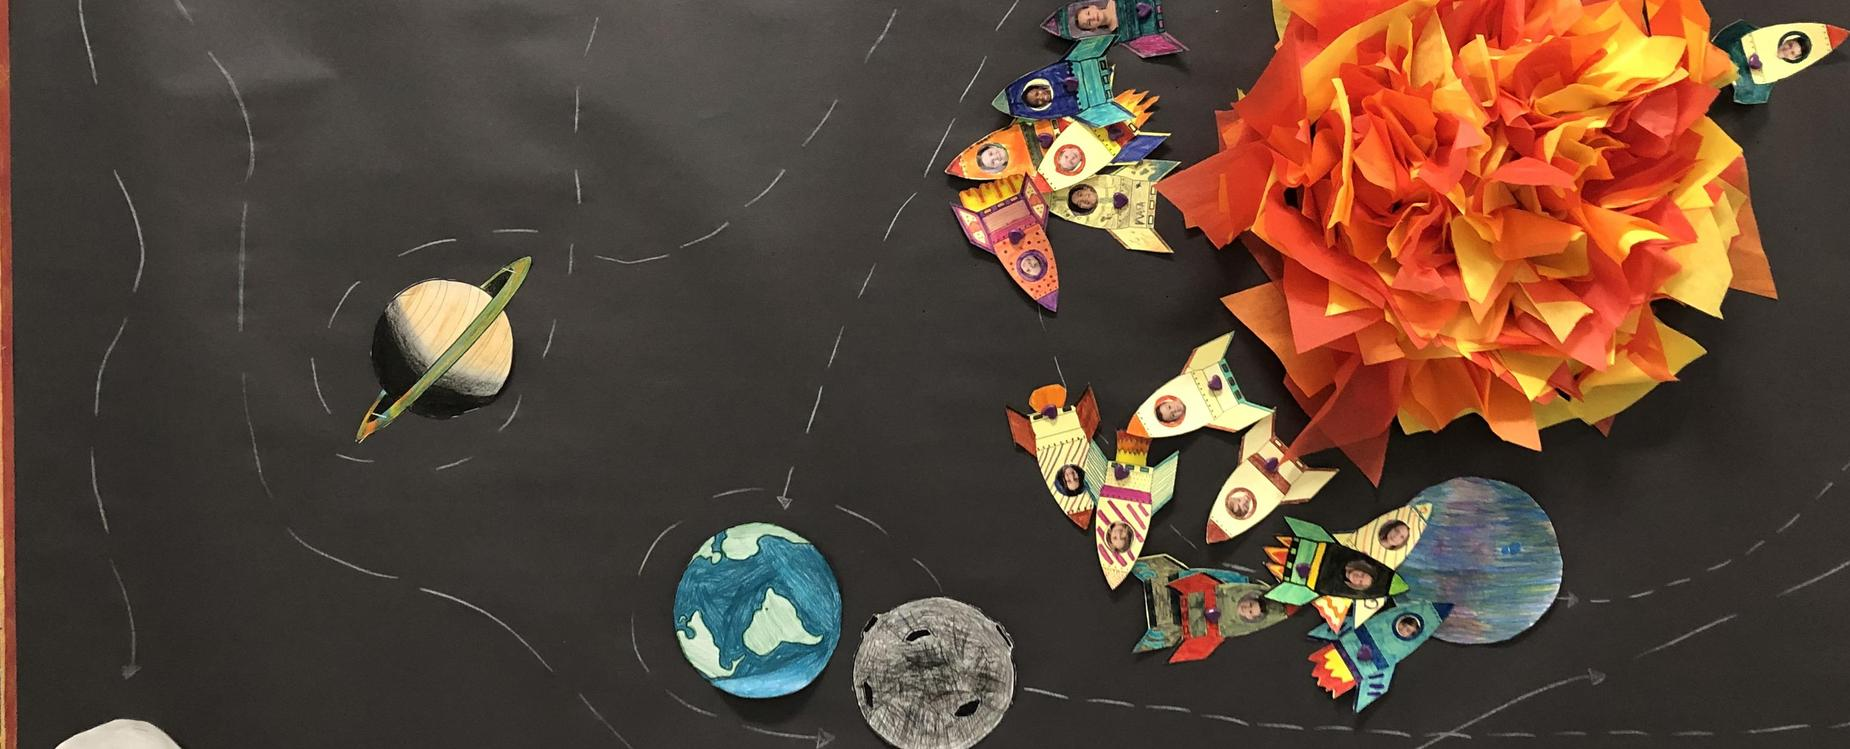 A tissue paper sun on a black background, with planets and student faces in rocketships